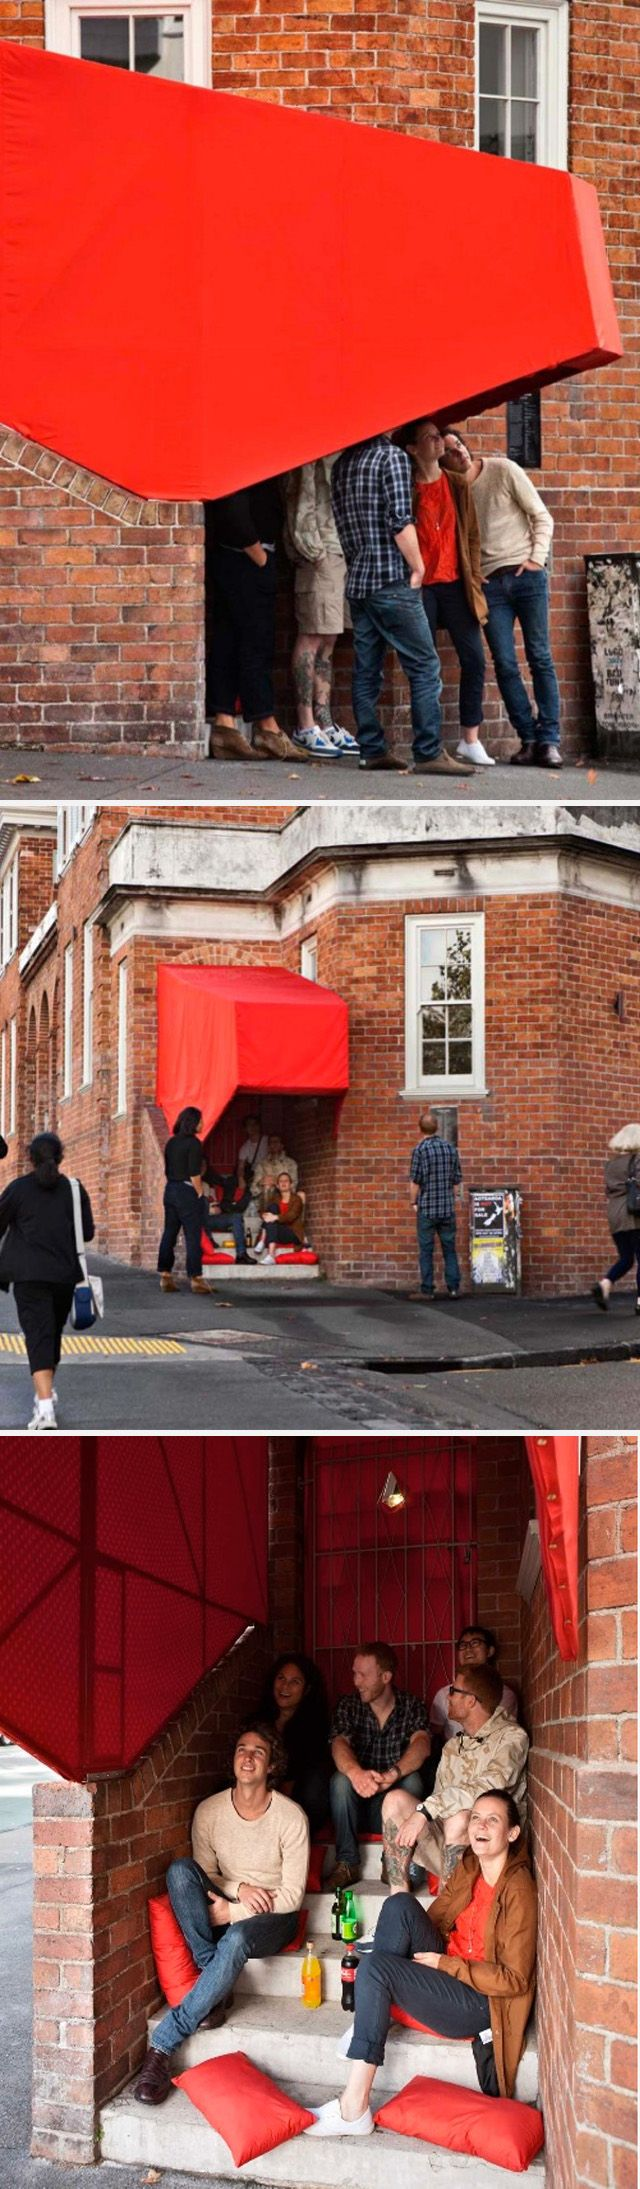 Informal public spaces   Stairway Cinema by OH.NO.SUMO. Housed in a corner in Auckland, this mini movie theater outdoor aims to recreate a space of socialization and communication projecting short films from the Internet.